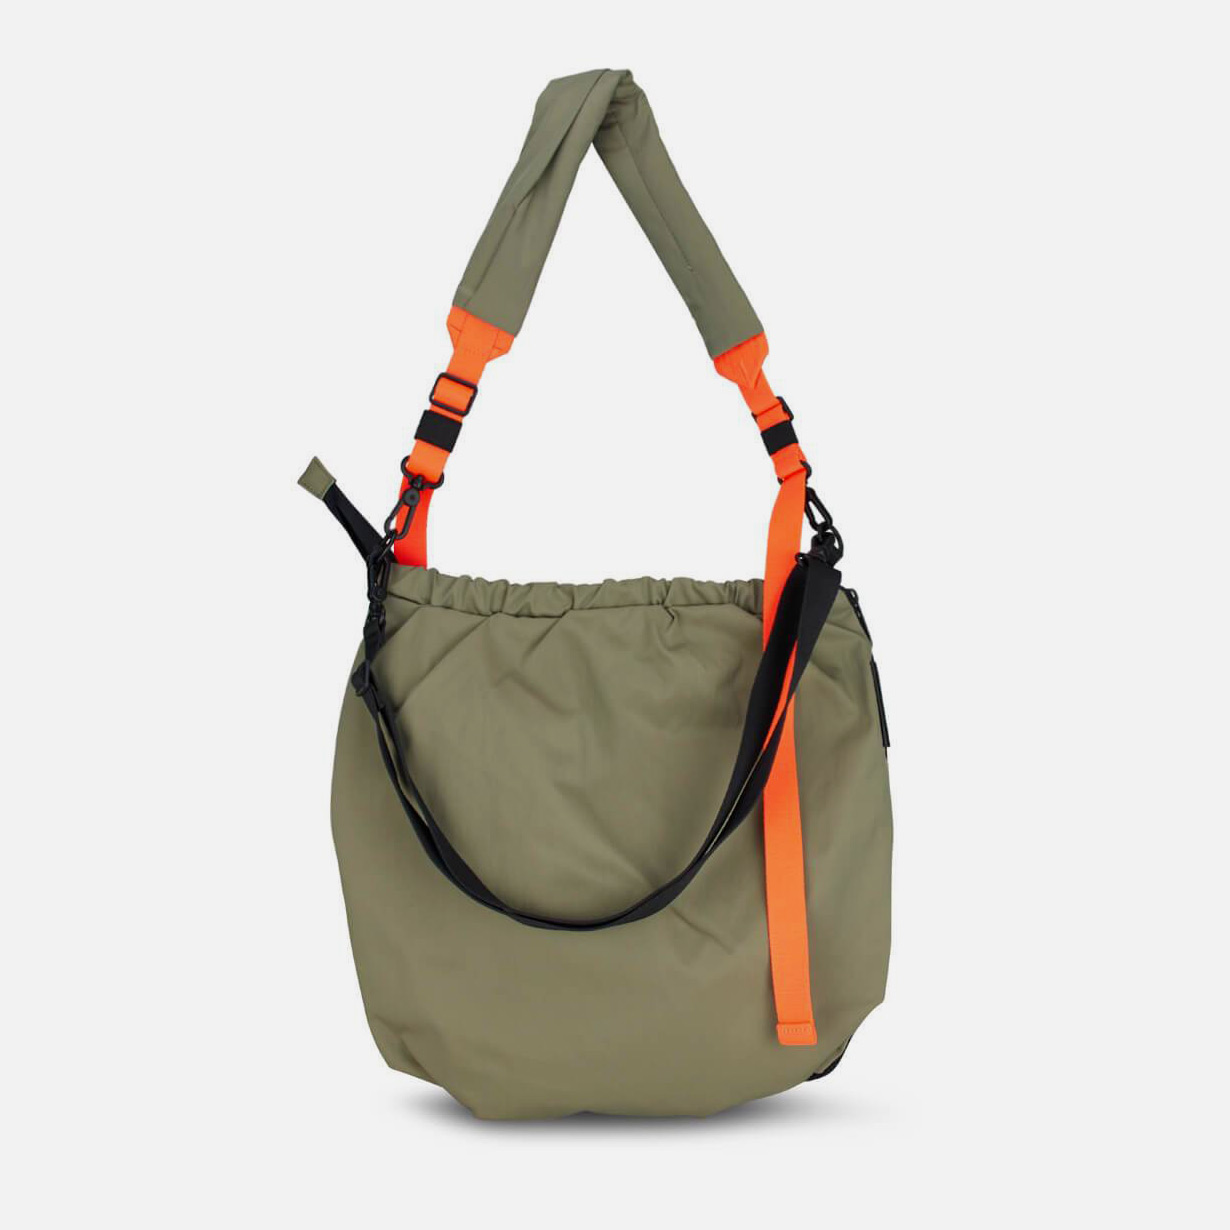 côte&ciel Orco smooth khaki messenger bag